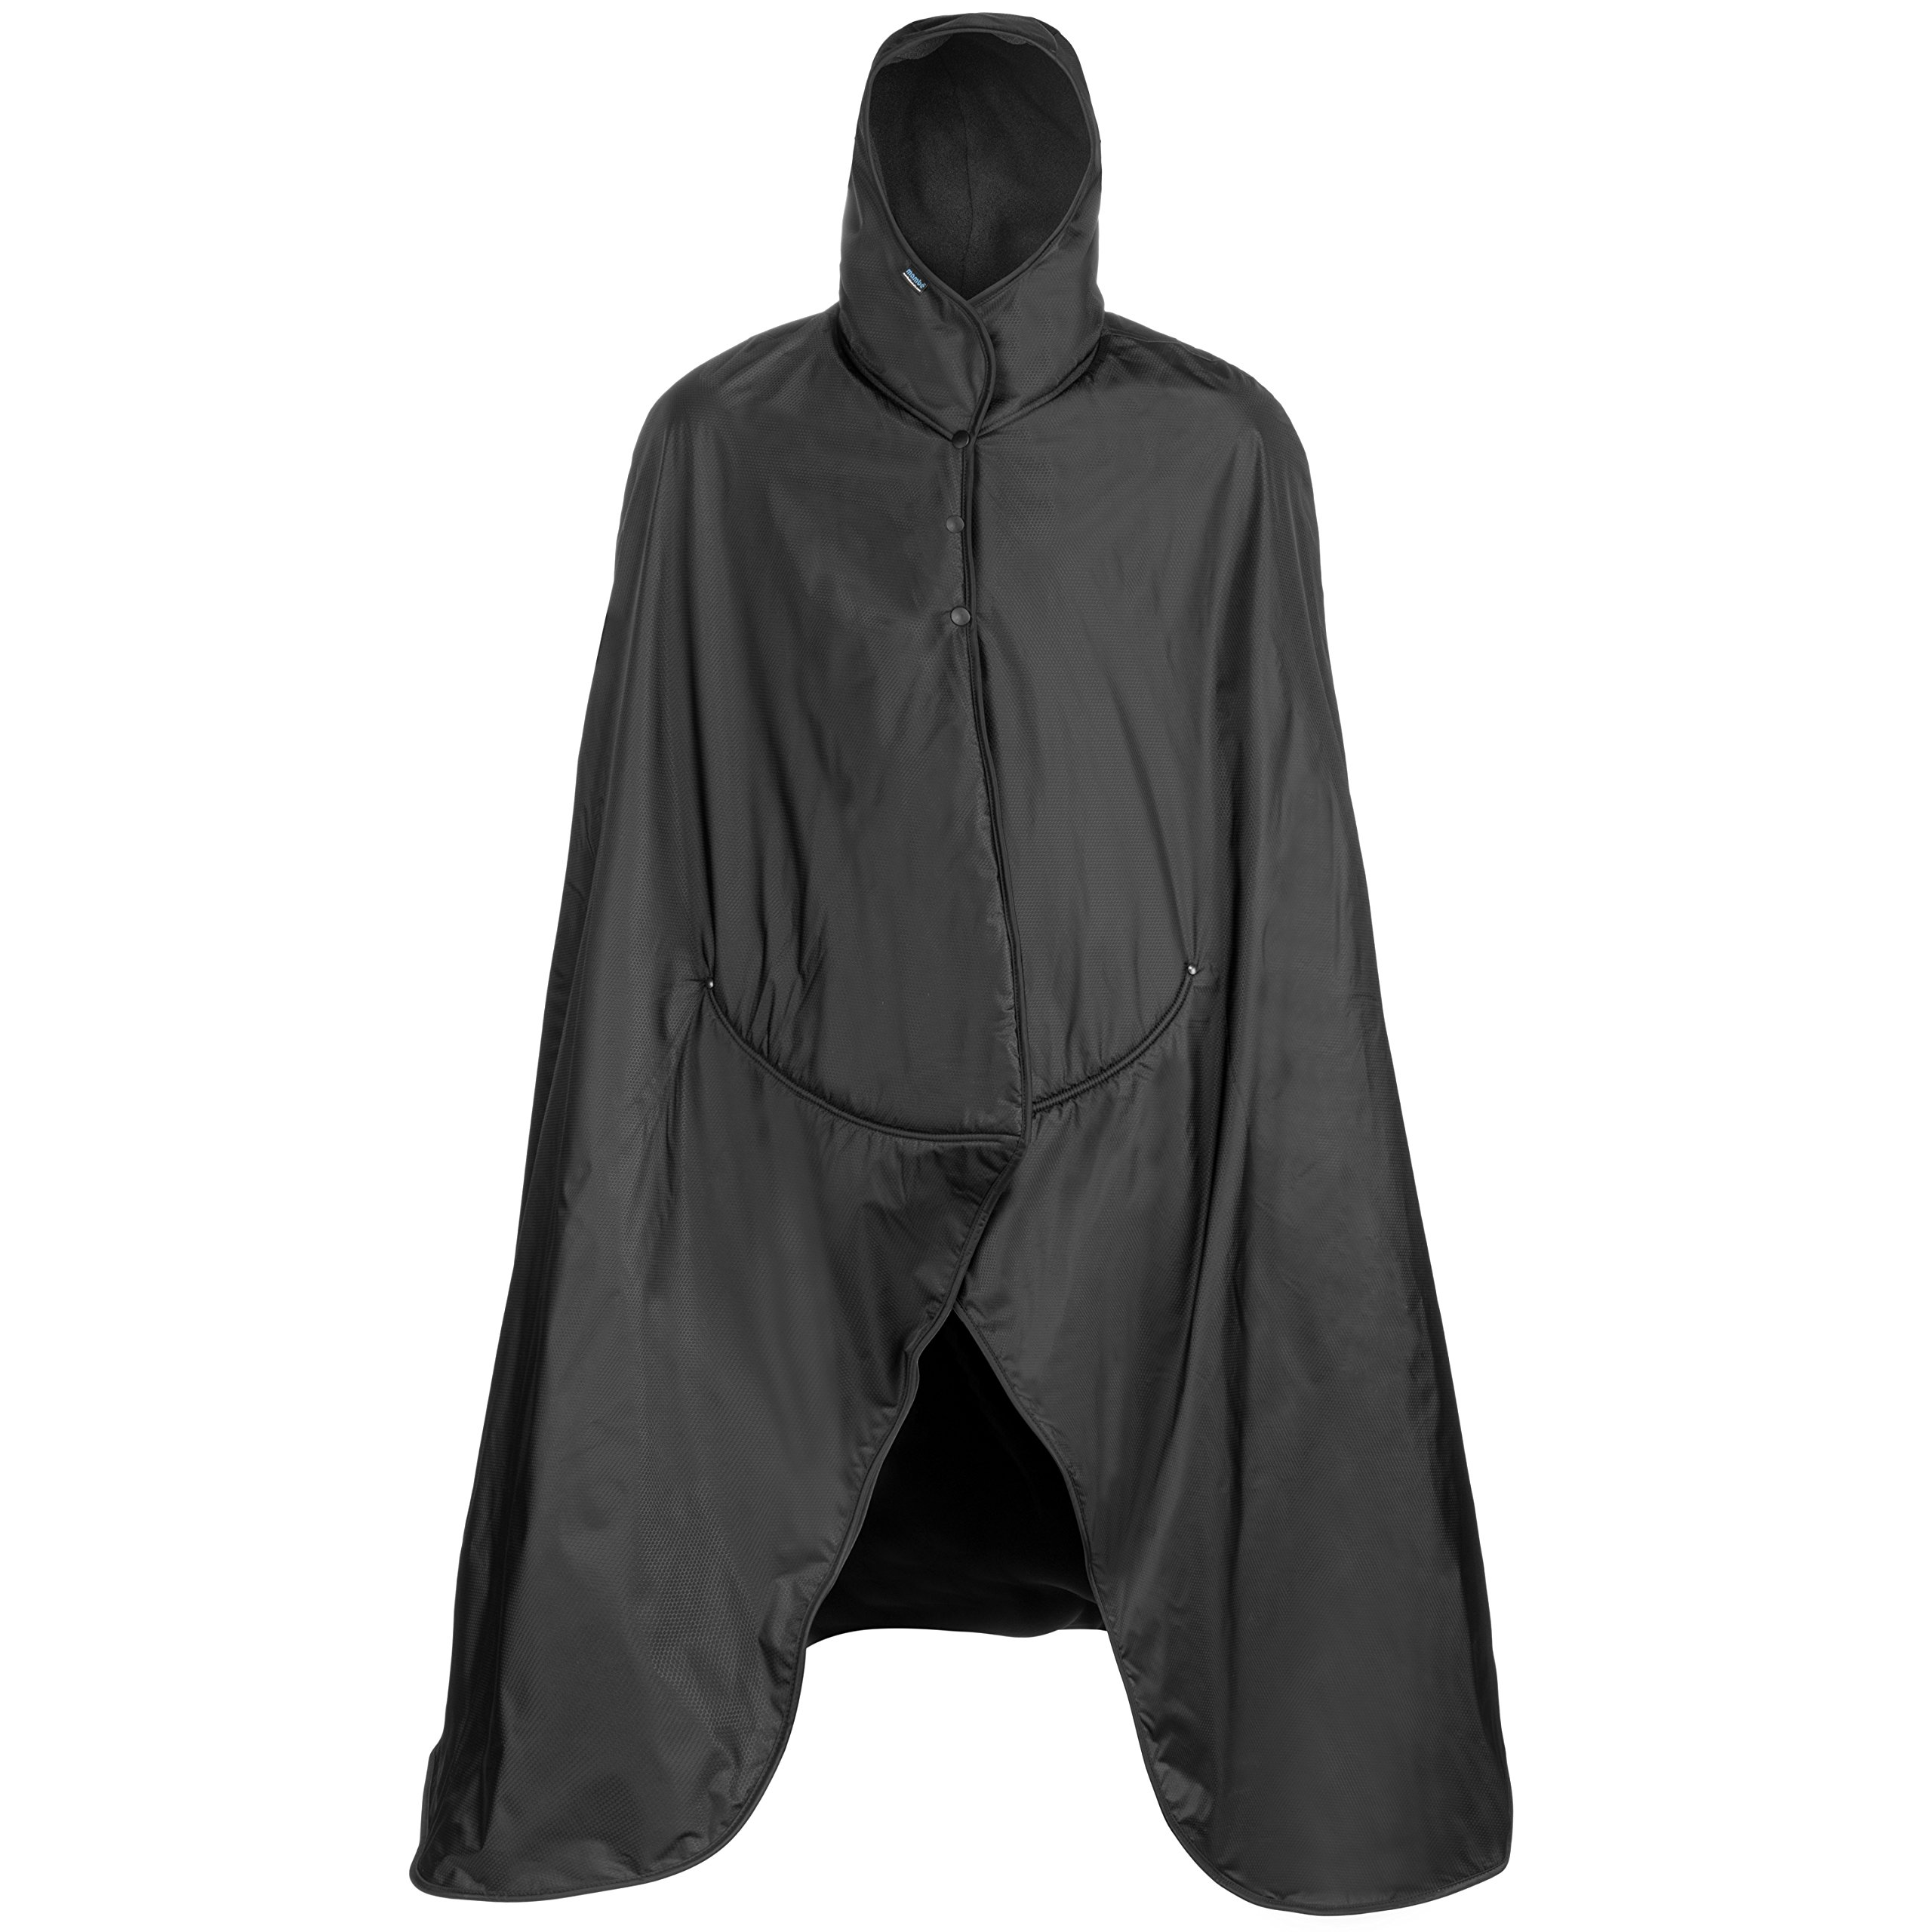 Mambe Extreme Weather 100% Waterproof/Windproof Hooded Blanket with Premium Stuff Sack (XL-Tall, Black-Black) Made in The USA by Mambe